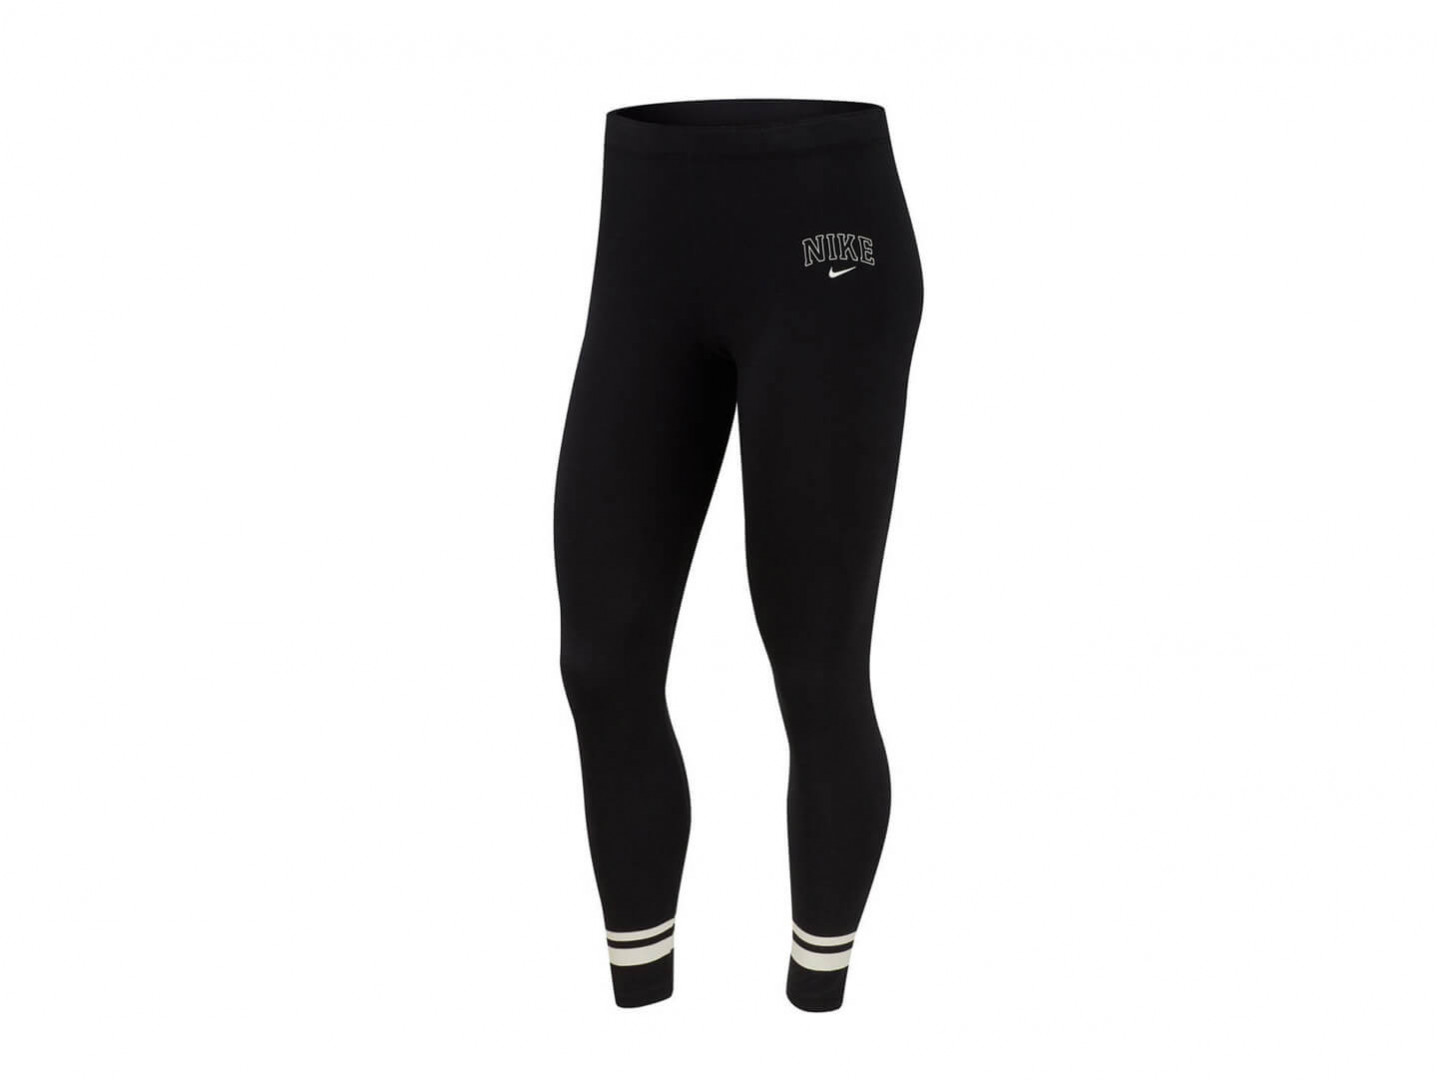 Женские леггинсы Nike Nsw Leggings Varsity / black